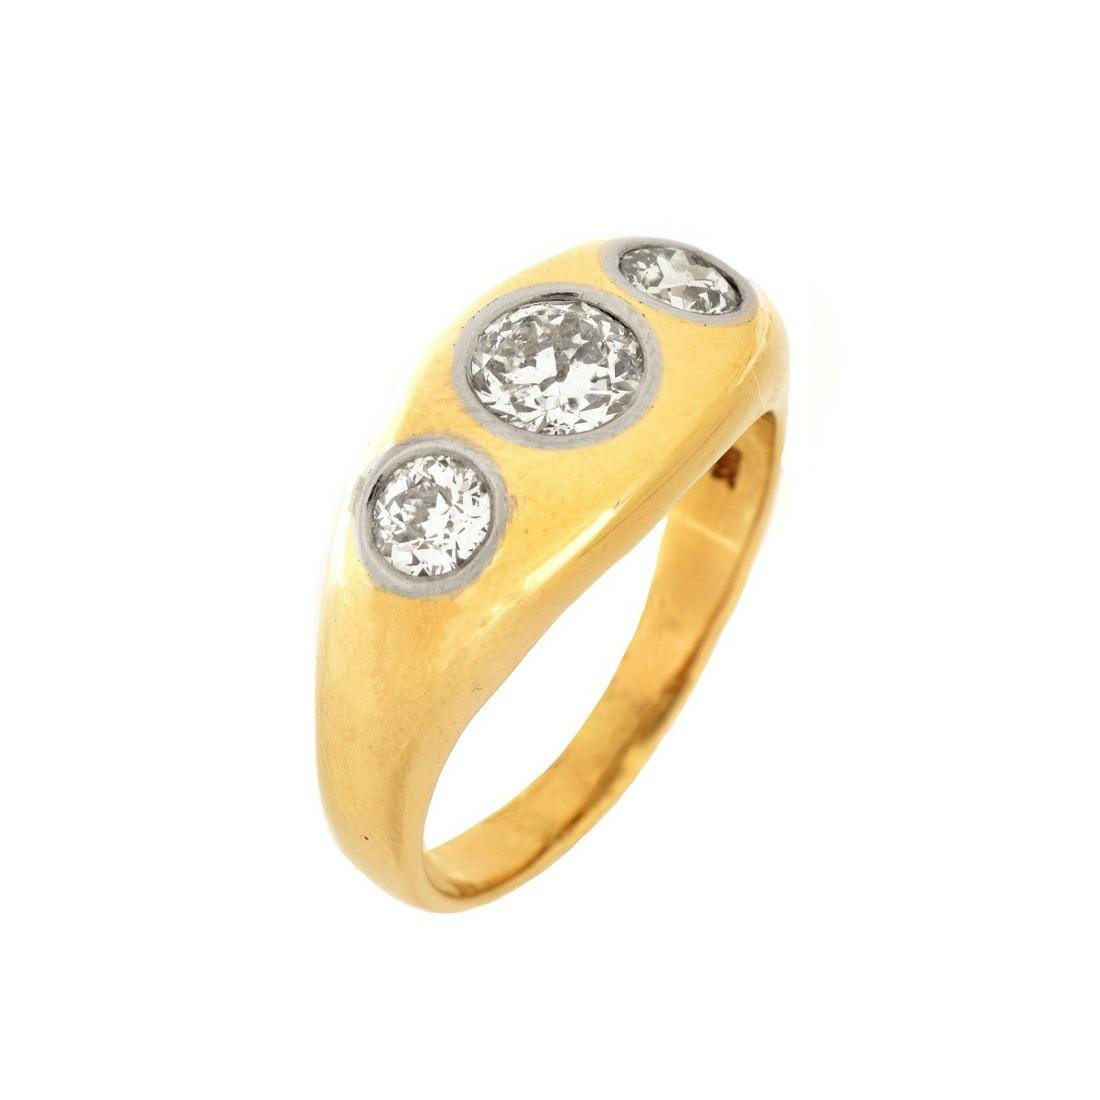 Man's Diamond and 14K Ring